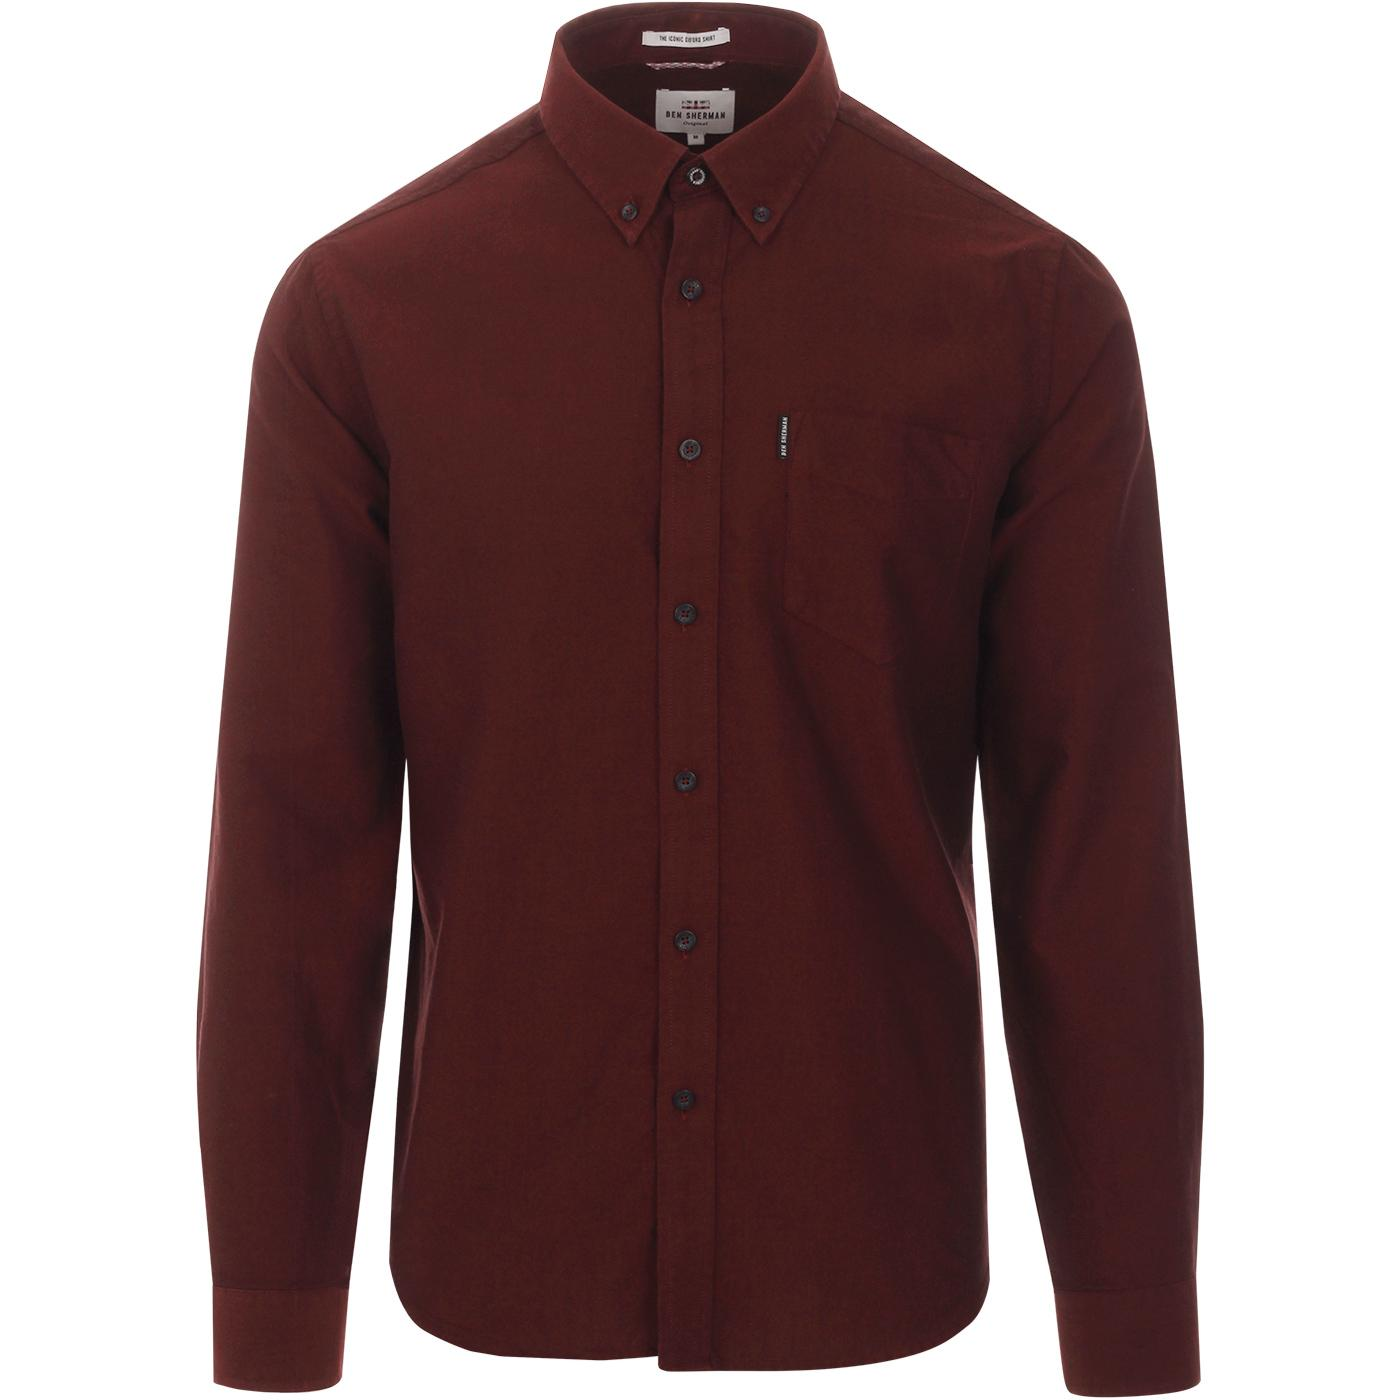 BEN SHERMAN Mod Button Down Oxford Shirt BROWN